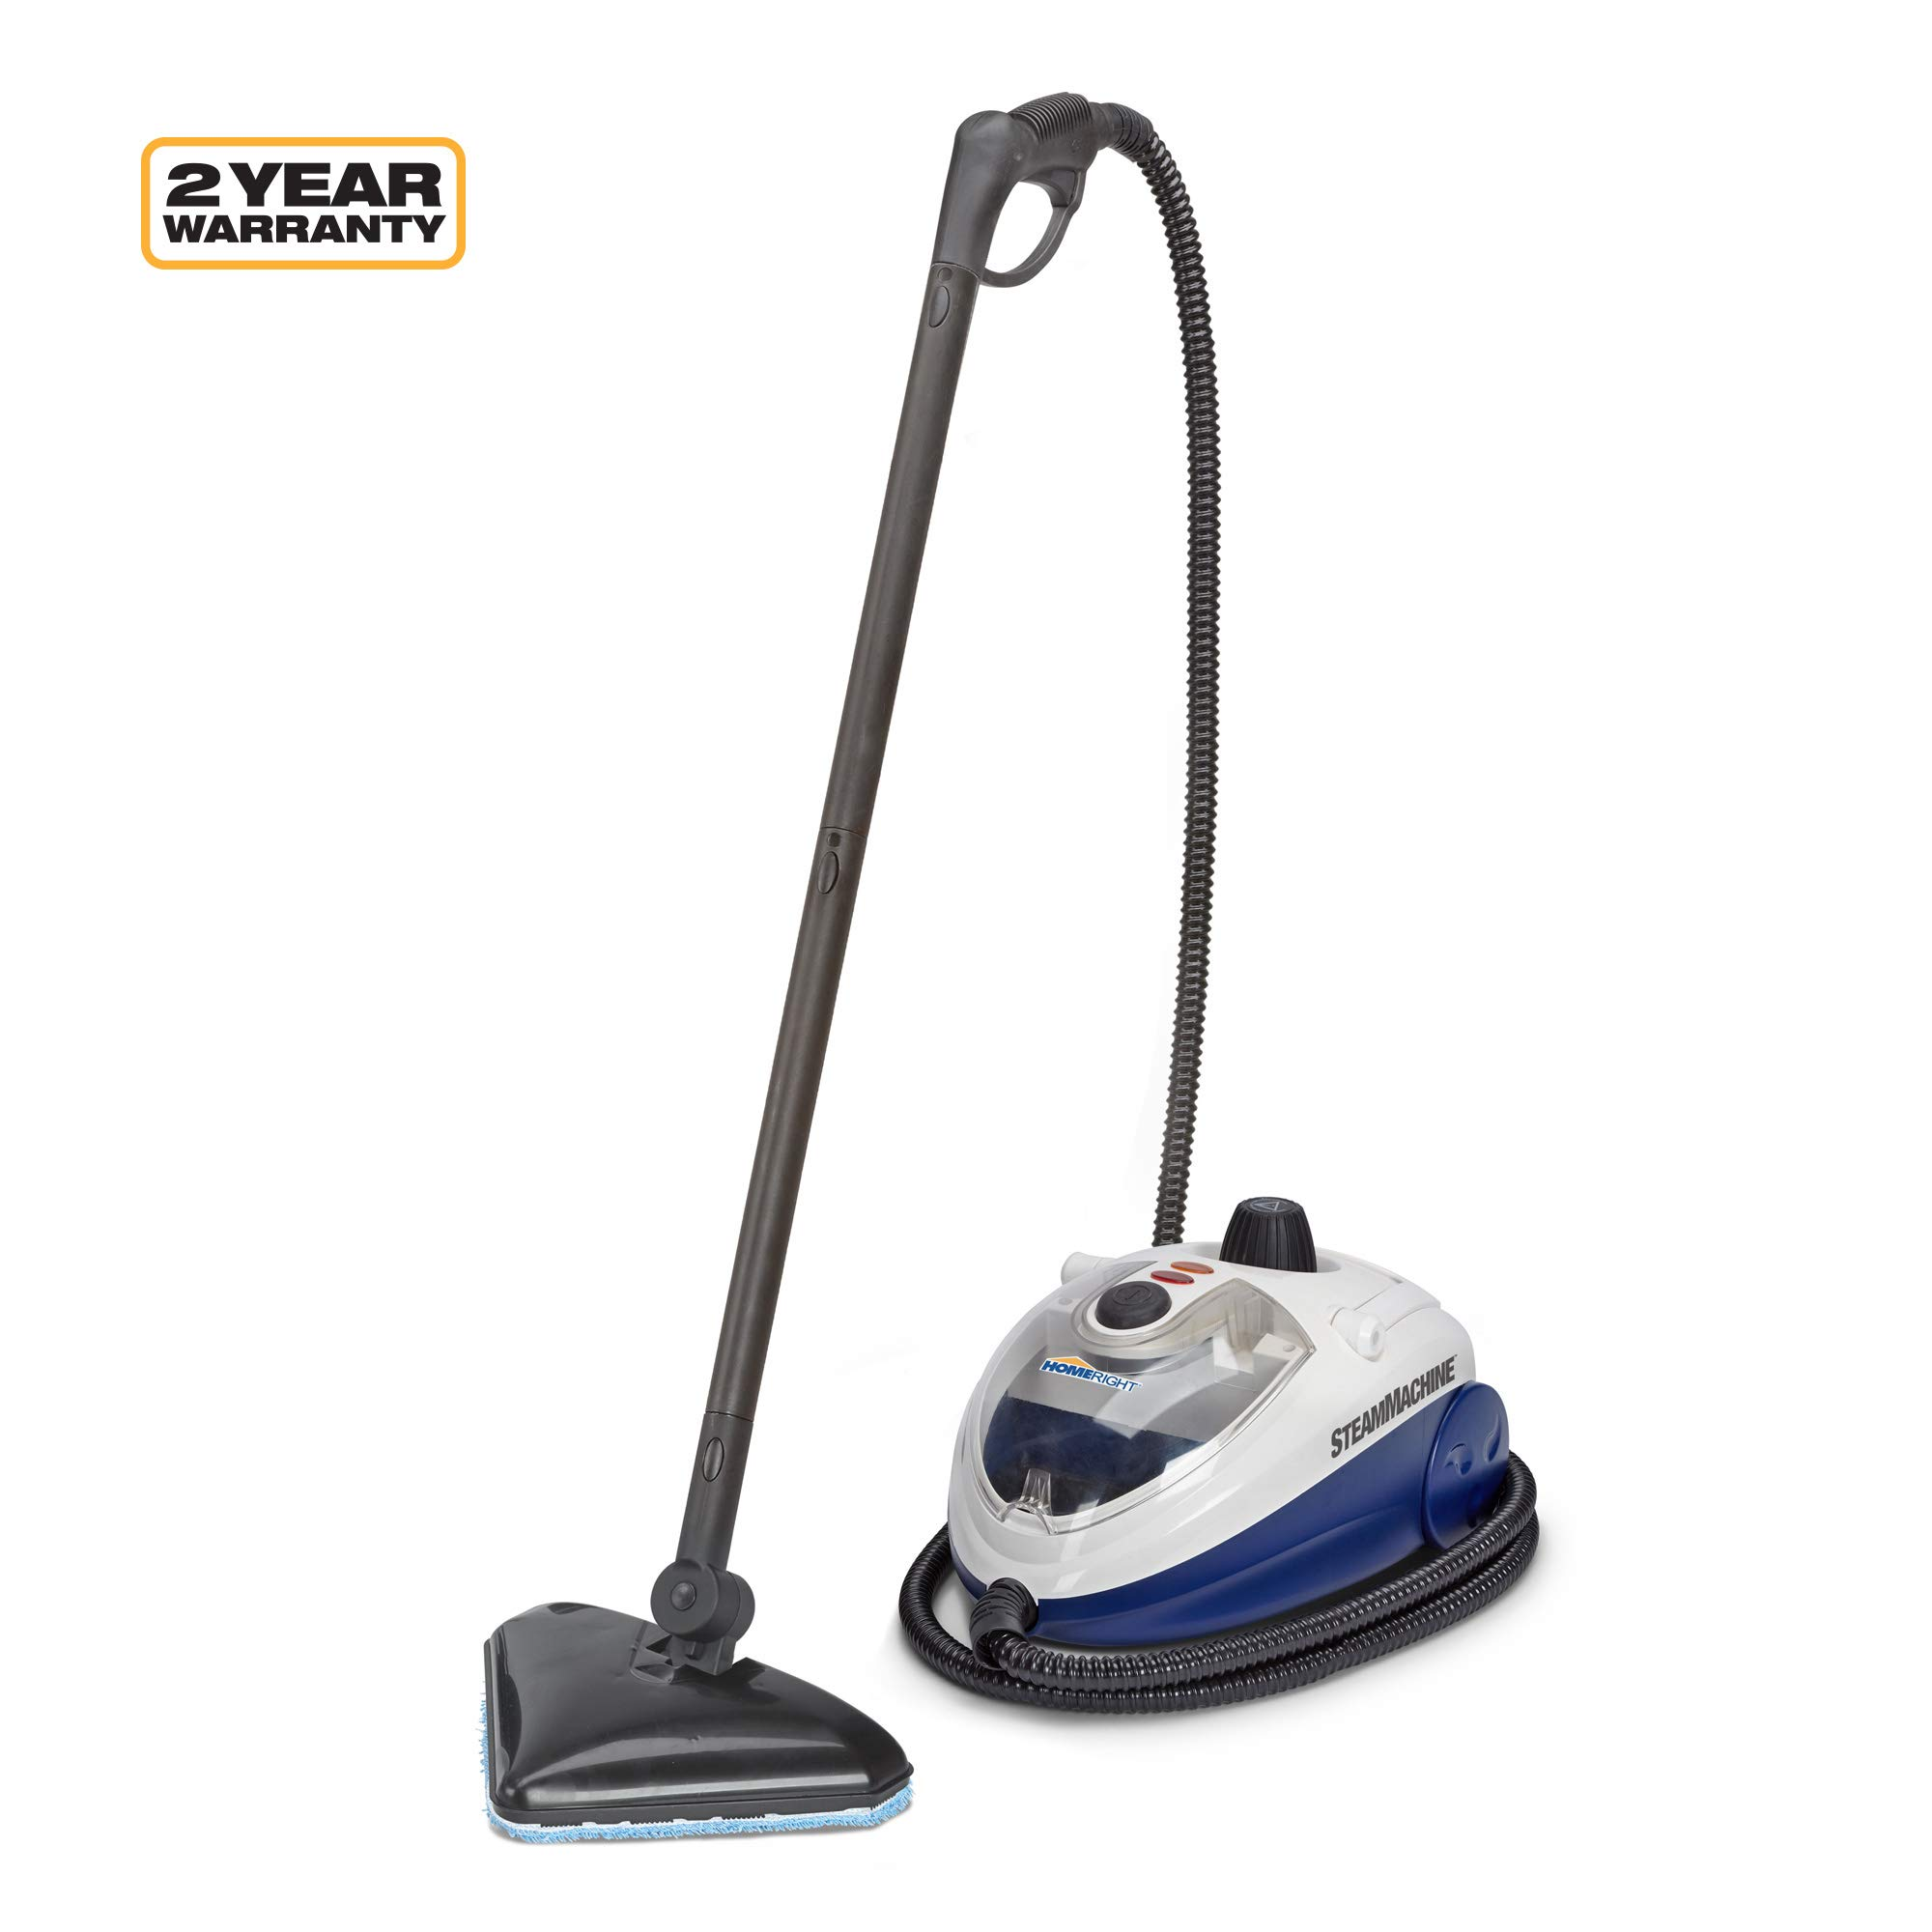 Wagner Spraytech C900134.M SteamMachine Elite Multi-Purpose Mop with 20 Accessories for Chemical-Free Steam Cleaning, Hardwood Floors, Tile, White by Wagner Spraytech